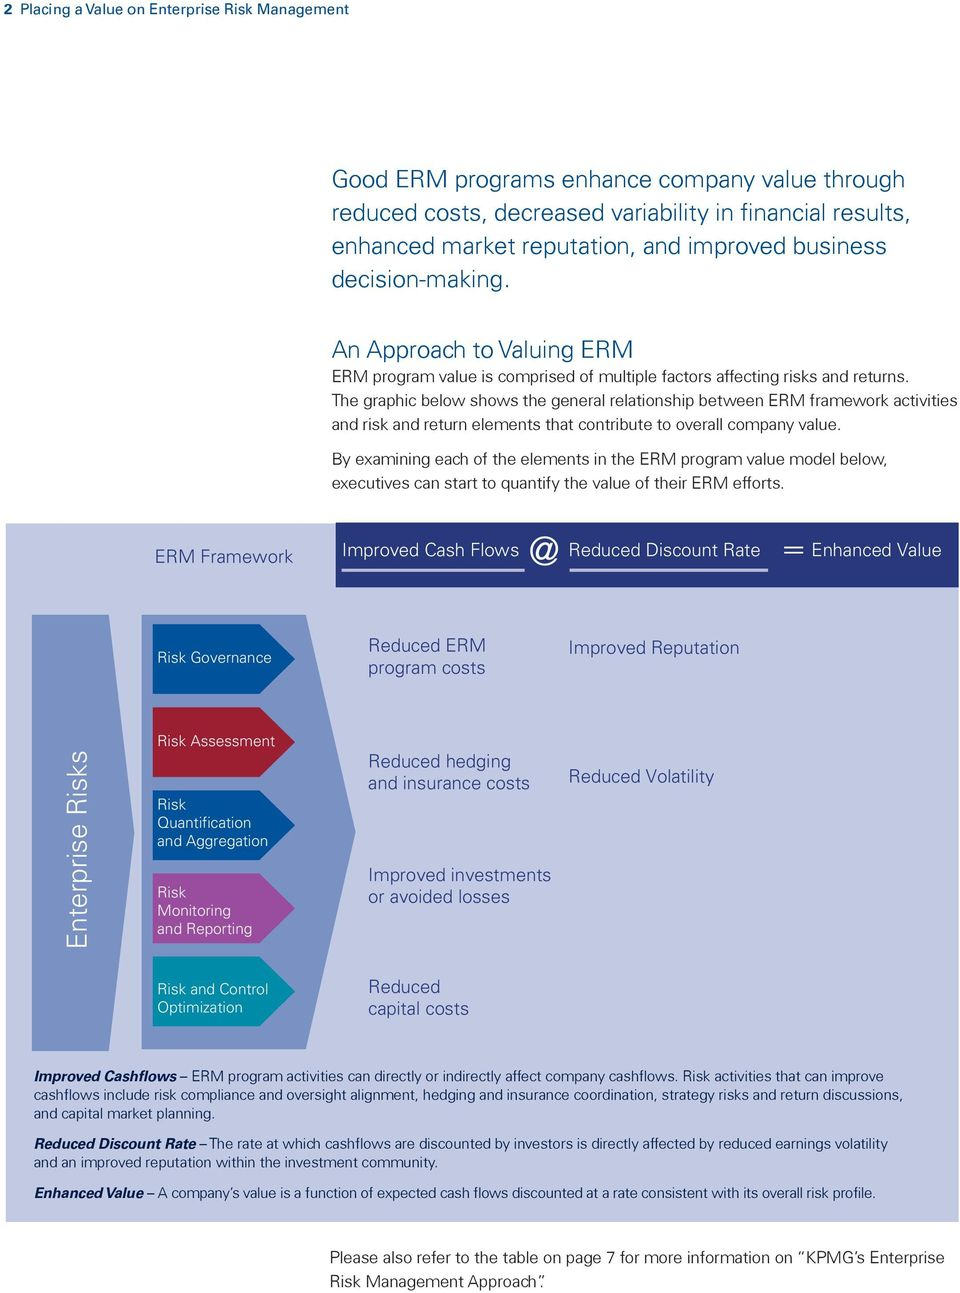 The graphic below shows the general relationship between ERM framework activities and risk and return elements that contribute to overall company value.